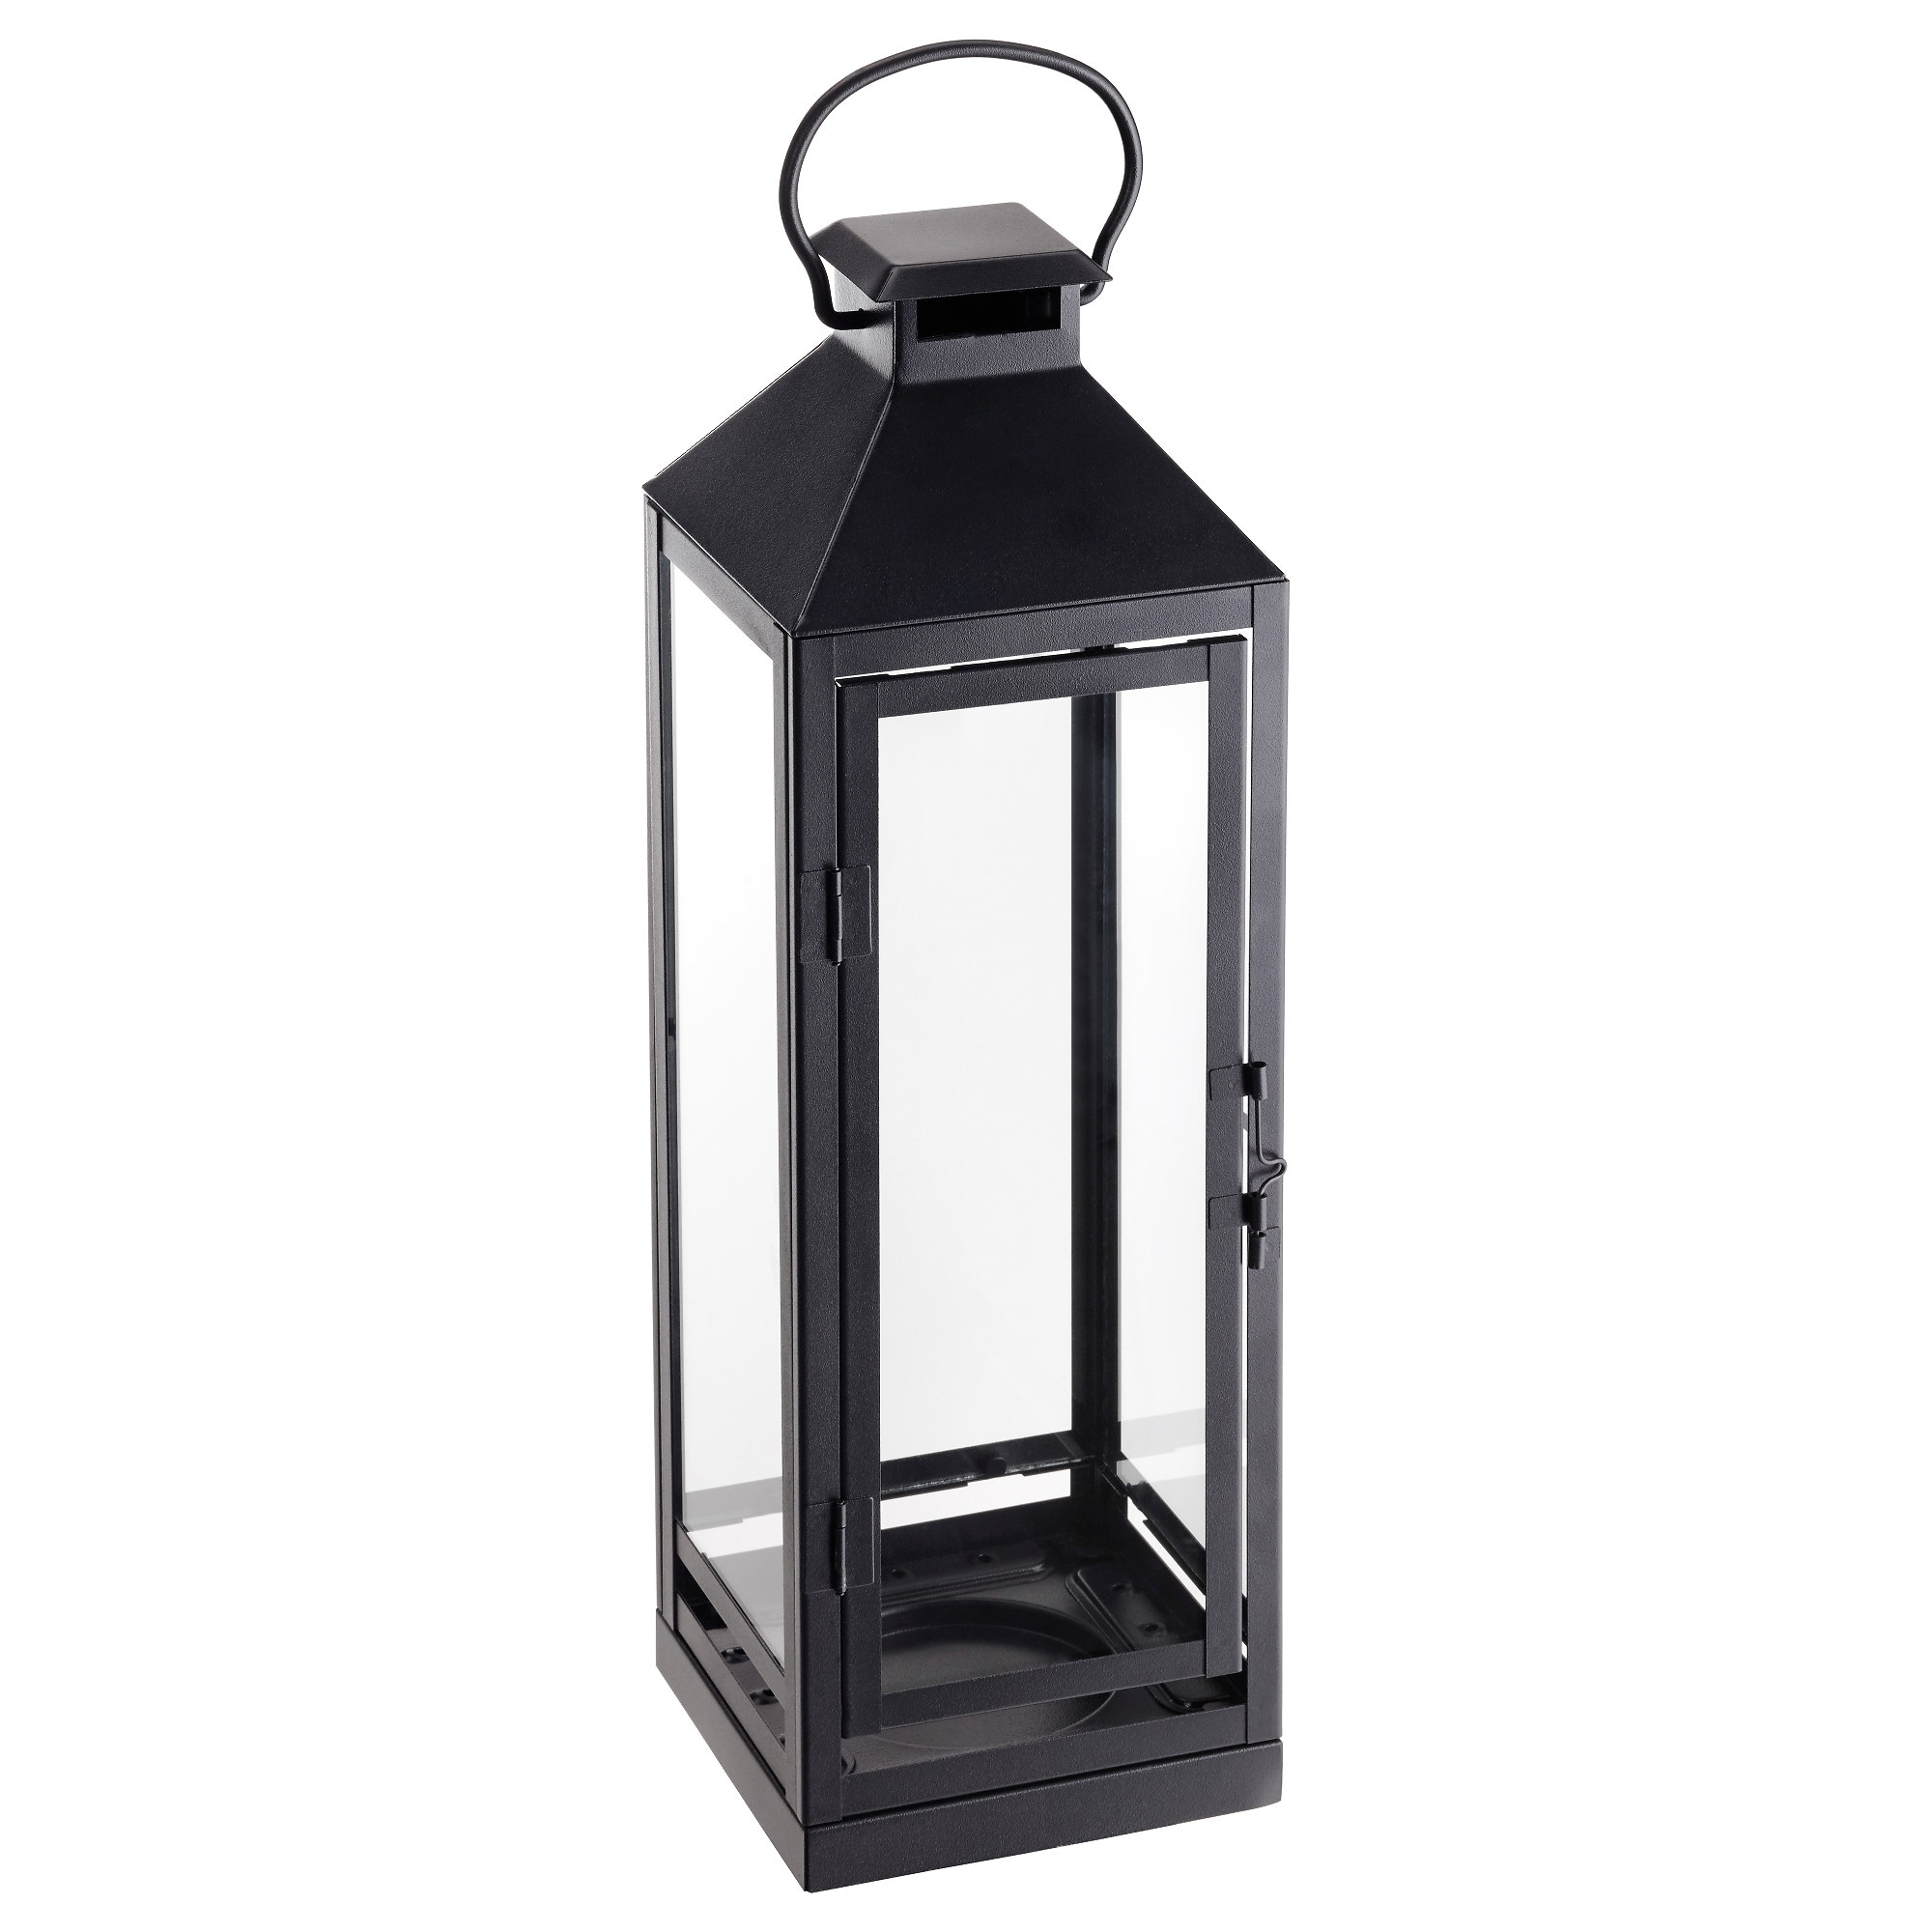 Lanterns & Candle Lanterns – Ikea Intended For Well Liked Outdoor Memorial Lanterns (View 3 of 20)